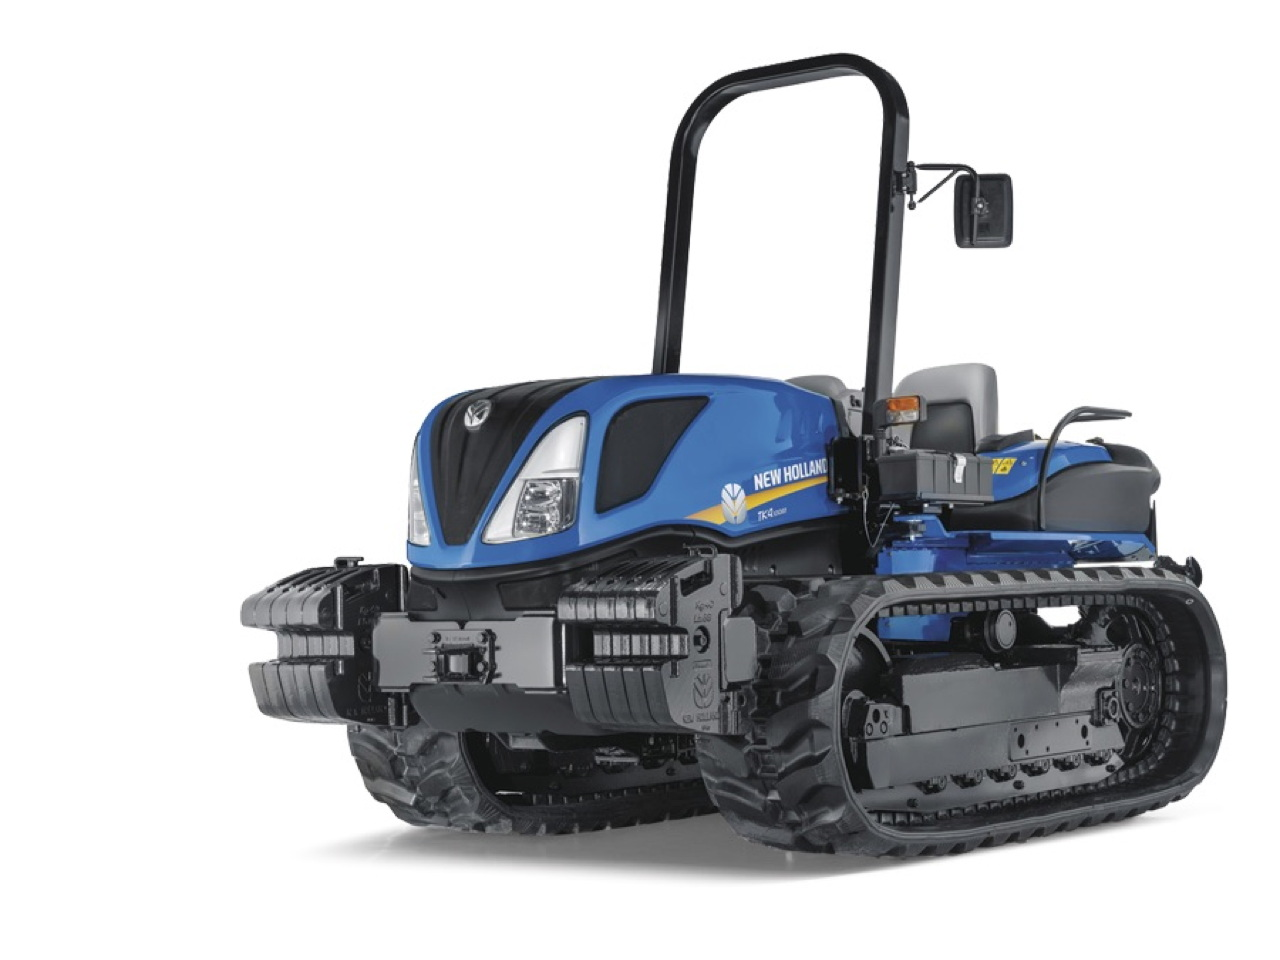 New Holland TK4 TK4.90